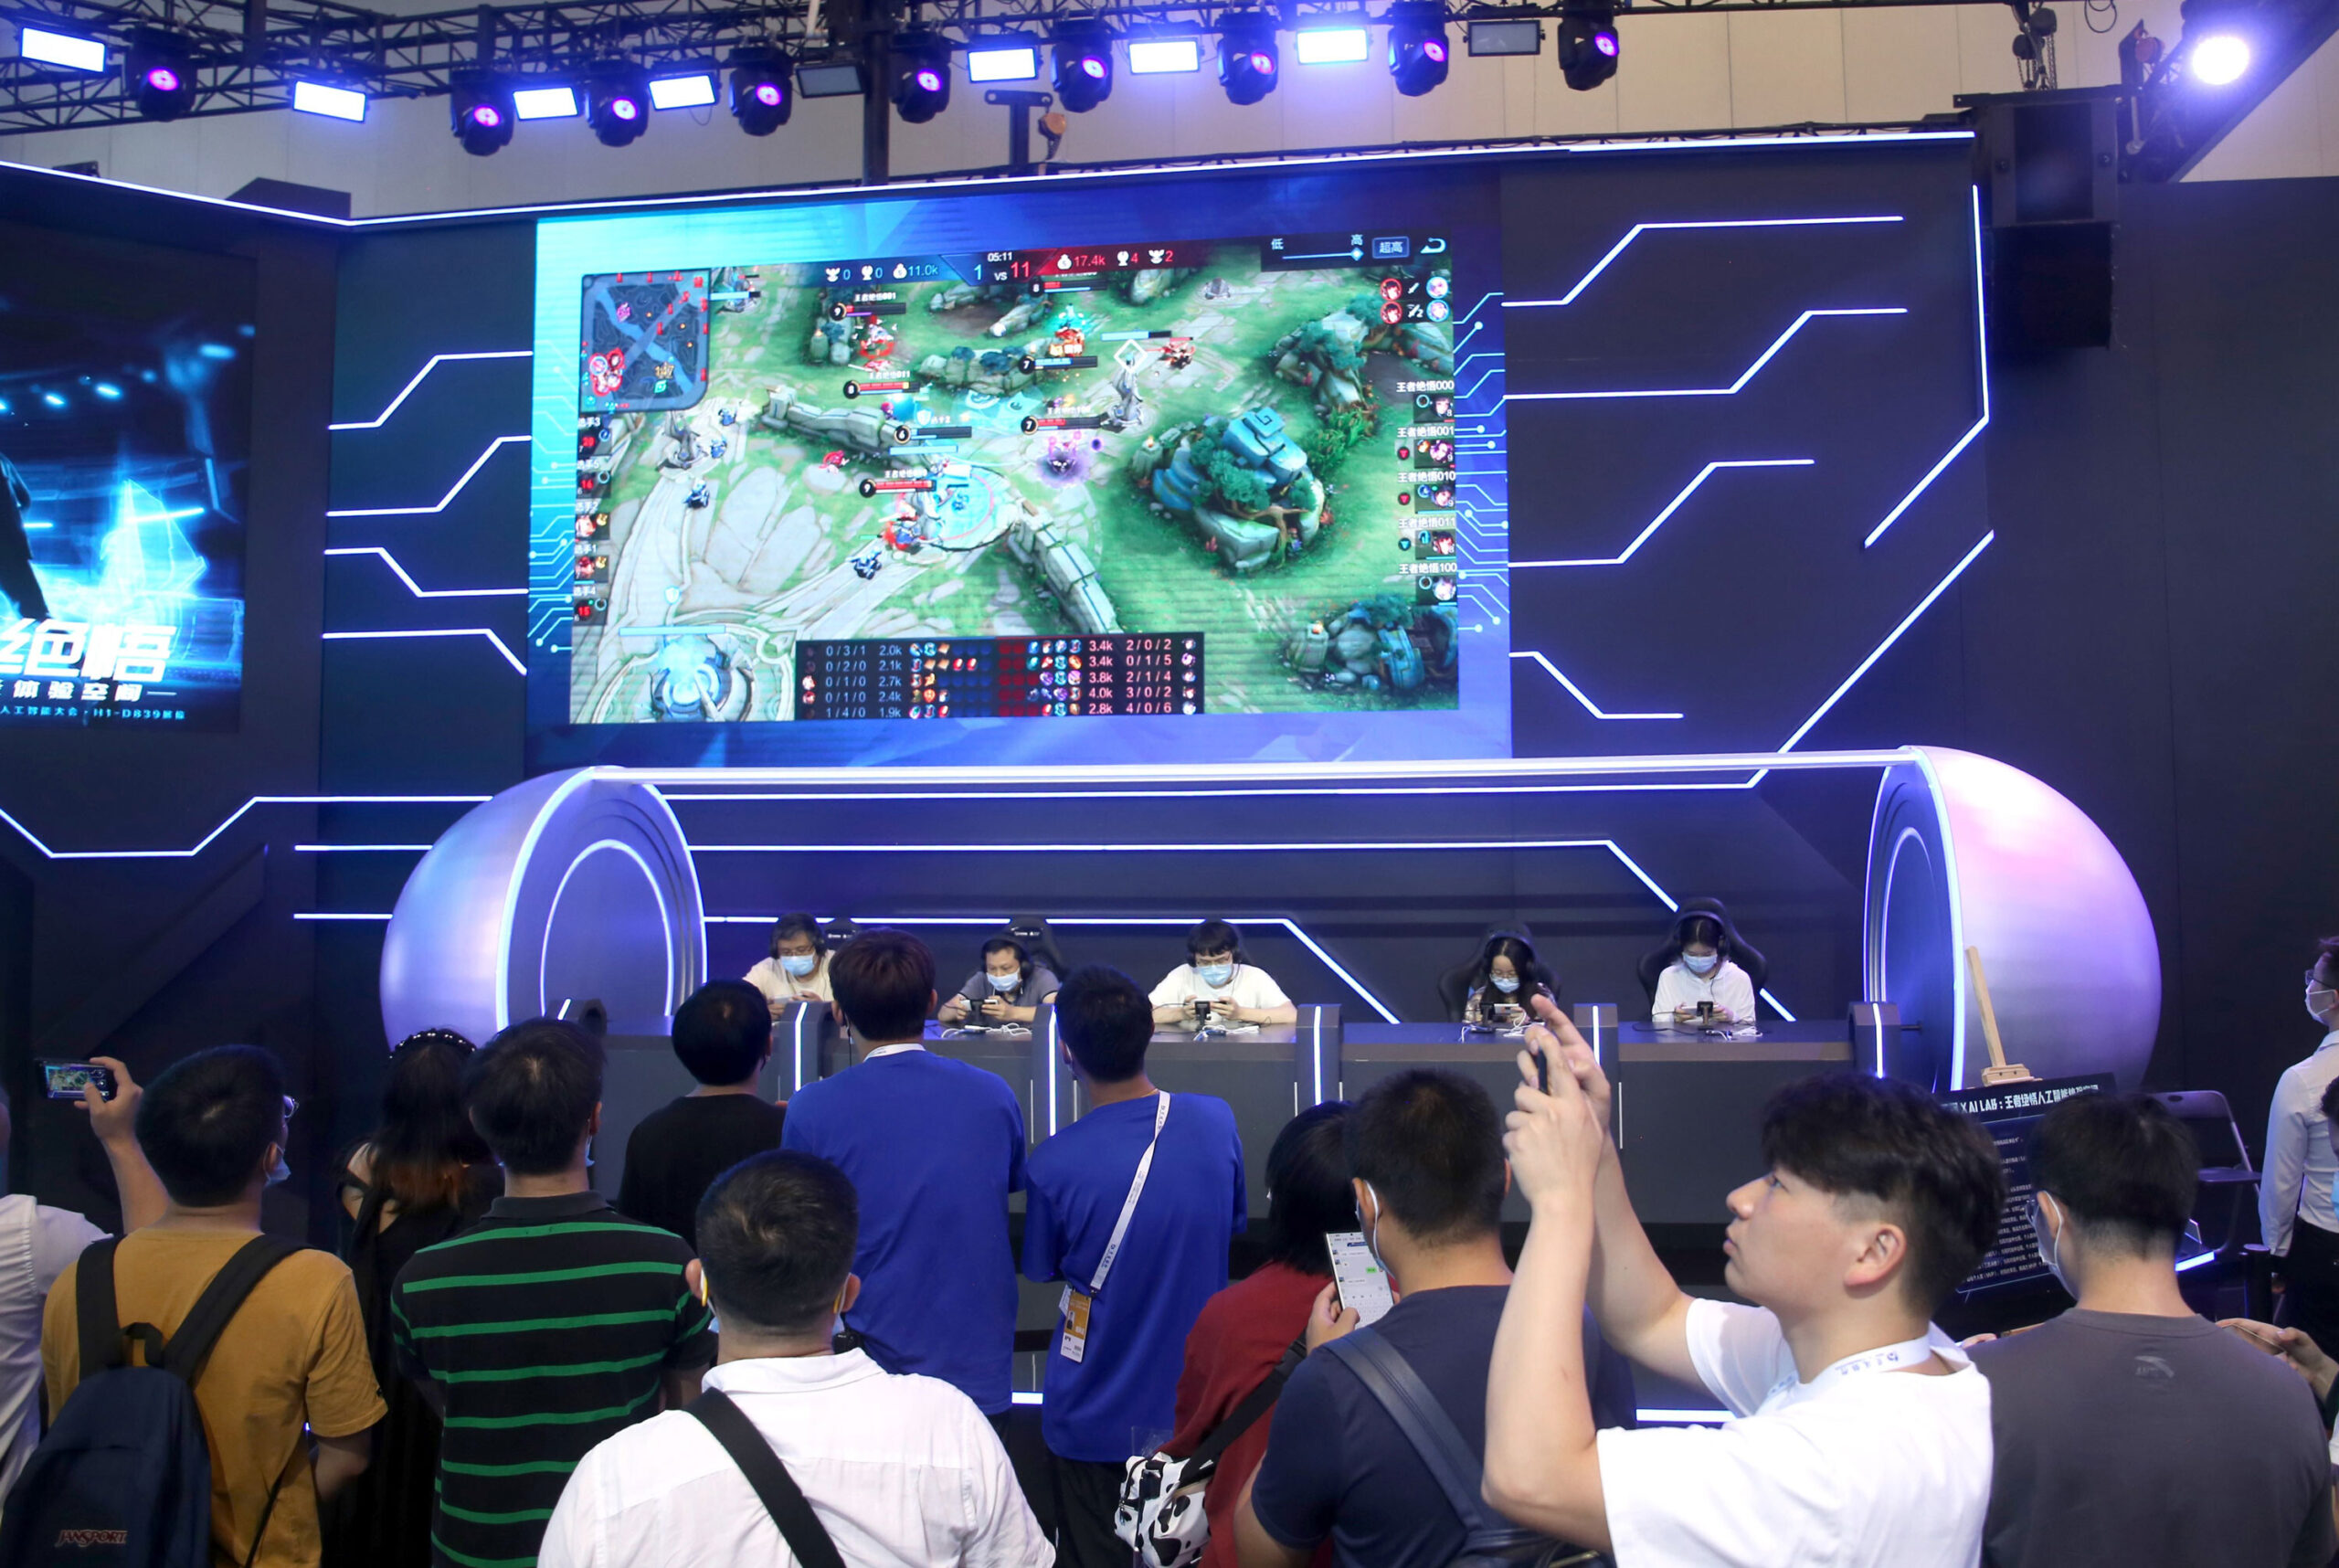 <i>Costfoto/Barcroft Media/Getty Images</i><br/>Tencent announces new limits on screen time as China increases crackdown on the gaming industry. This image taken on July 9 shows Tencent's game Honor of Kings in Shanghai